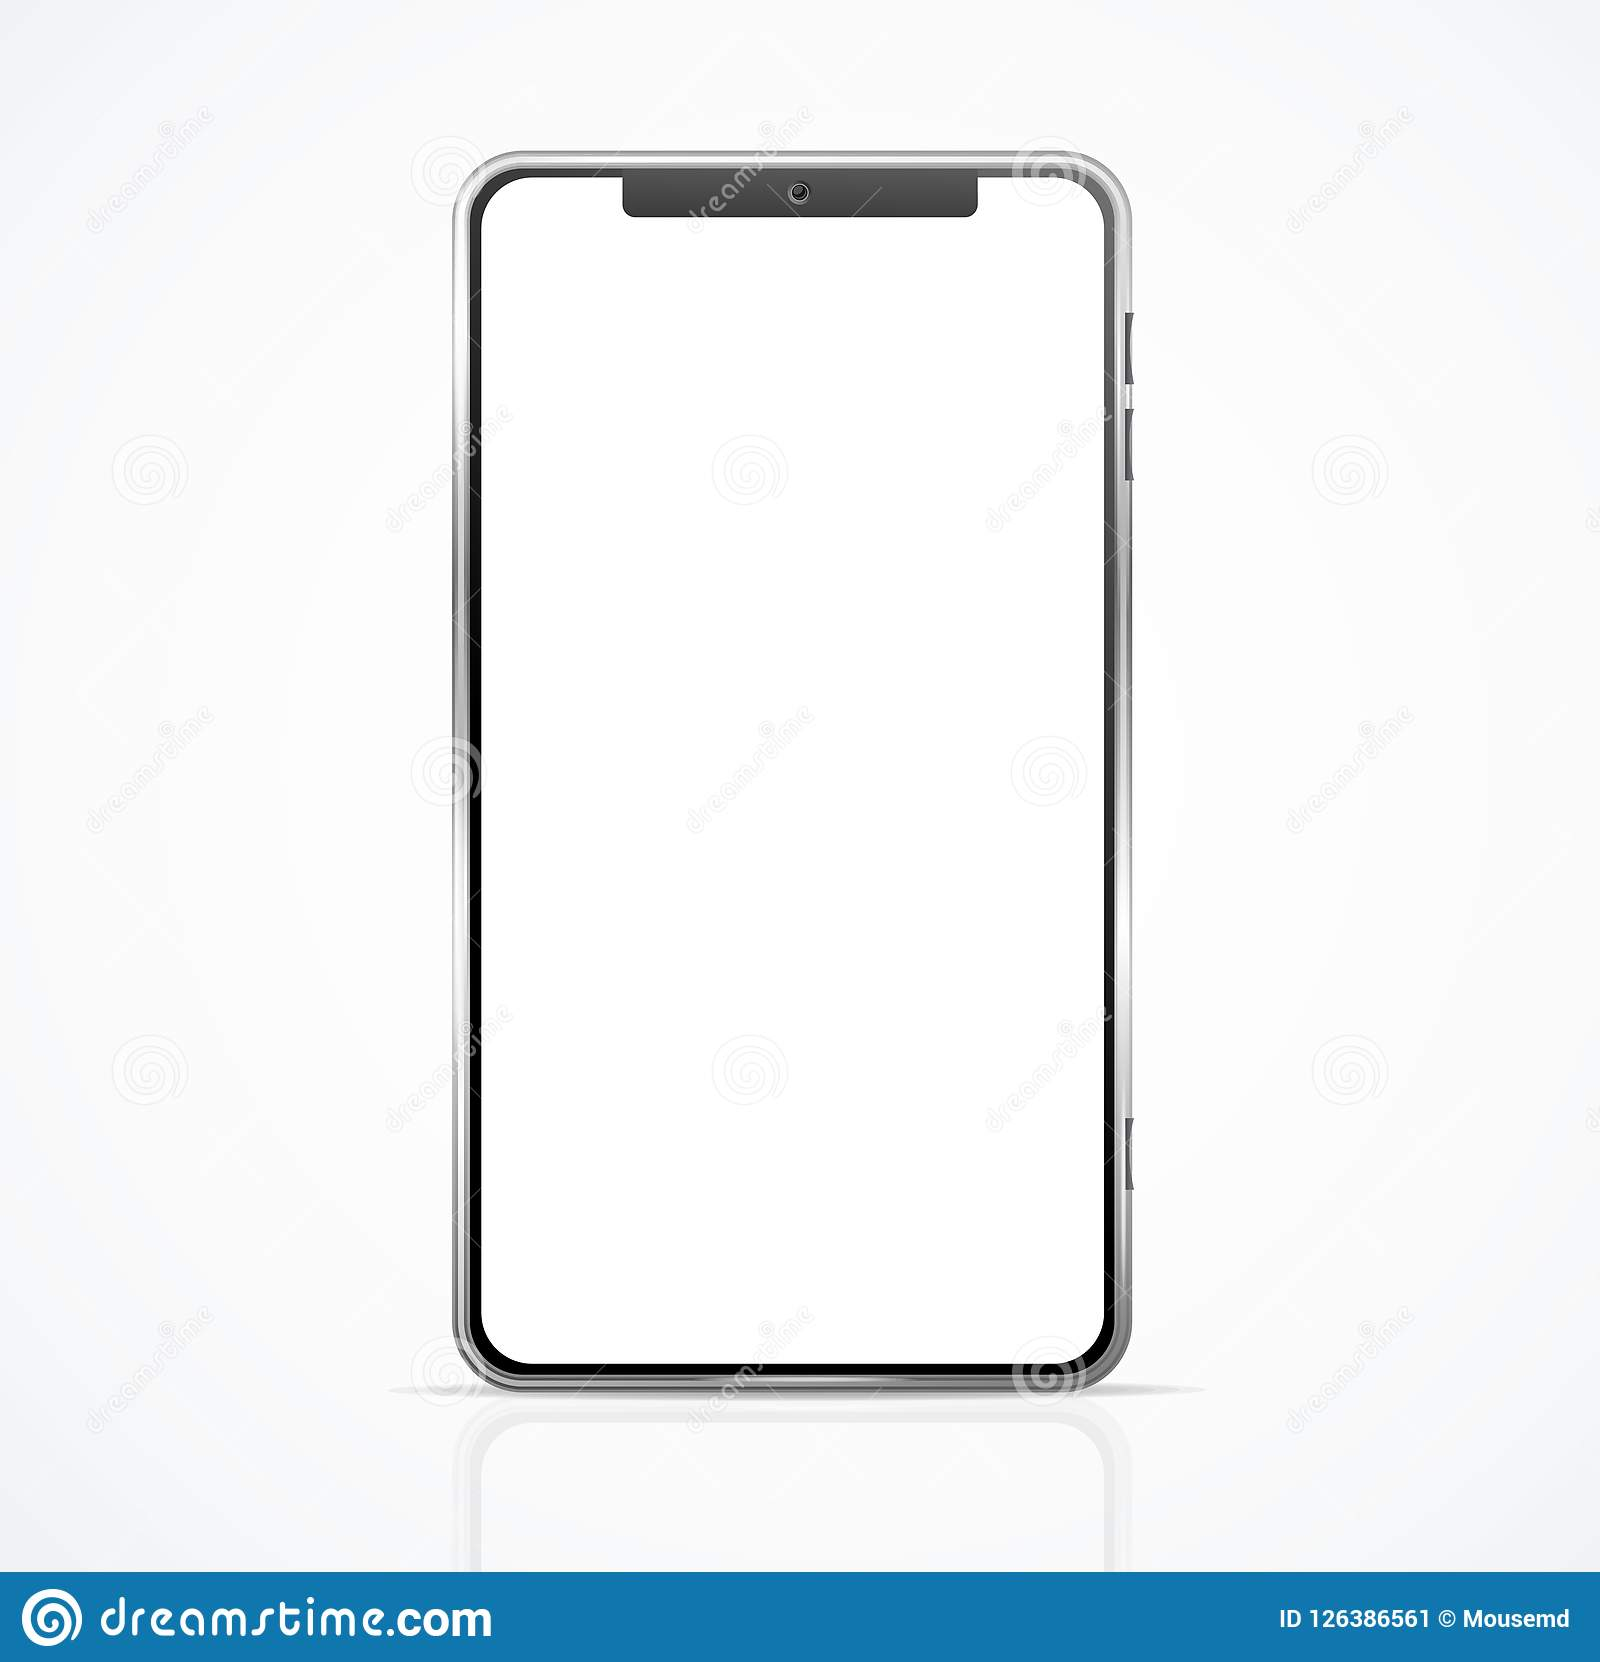 830223dd468038 Realistic Detailed 3d Blank Phone Empty Template Mockup Communication  Technology Element. Vector illustration of Smartphone Gadget or Telephone